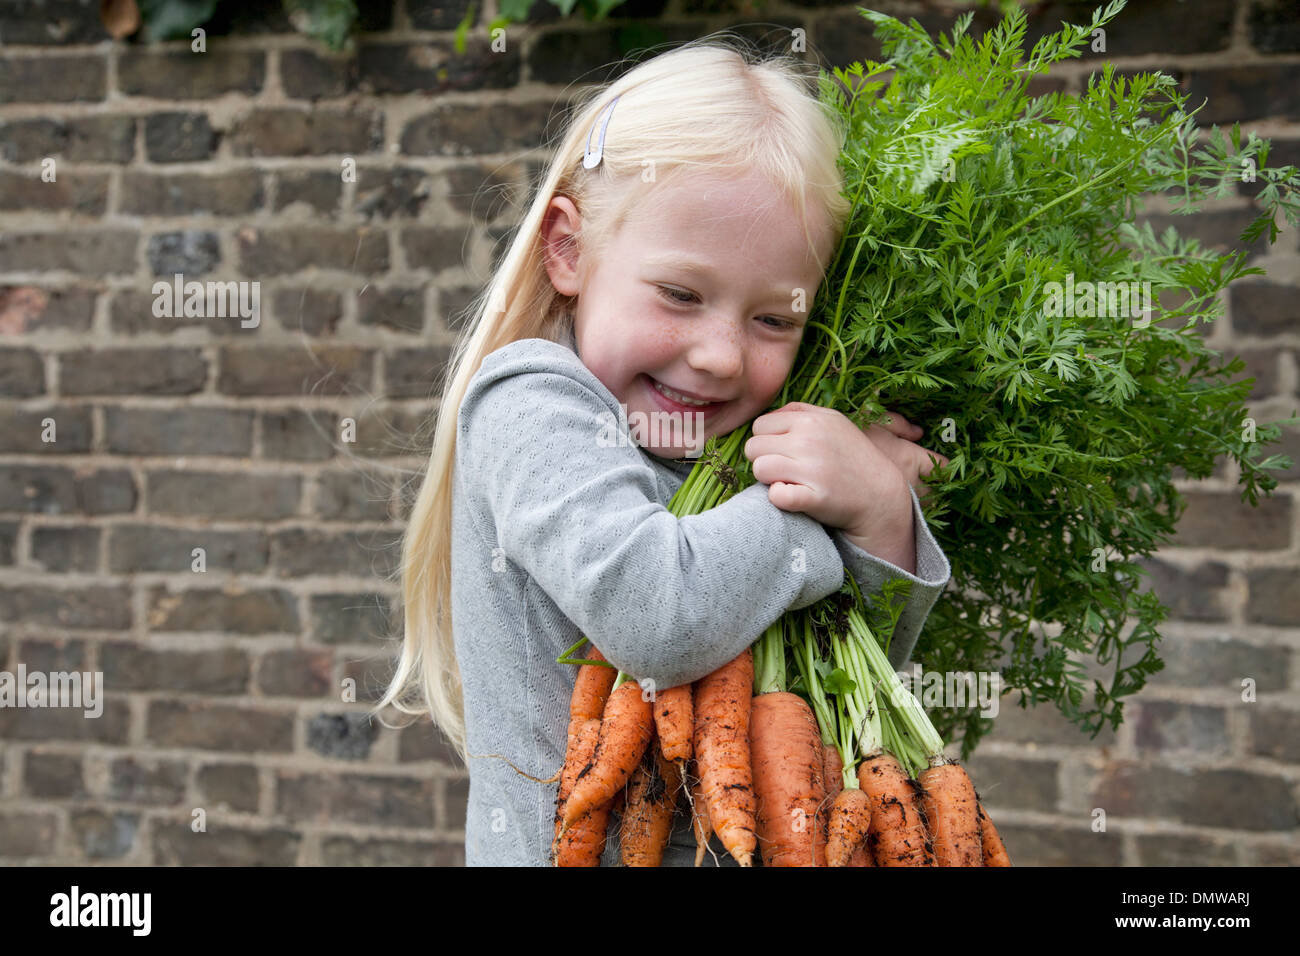 A young girl holding a large bunch of carrots. - Stock Image